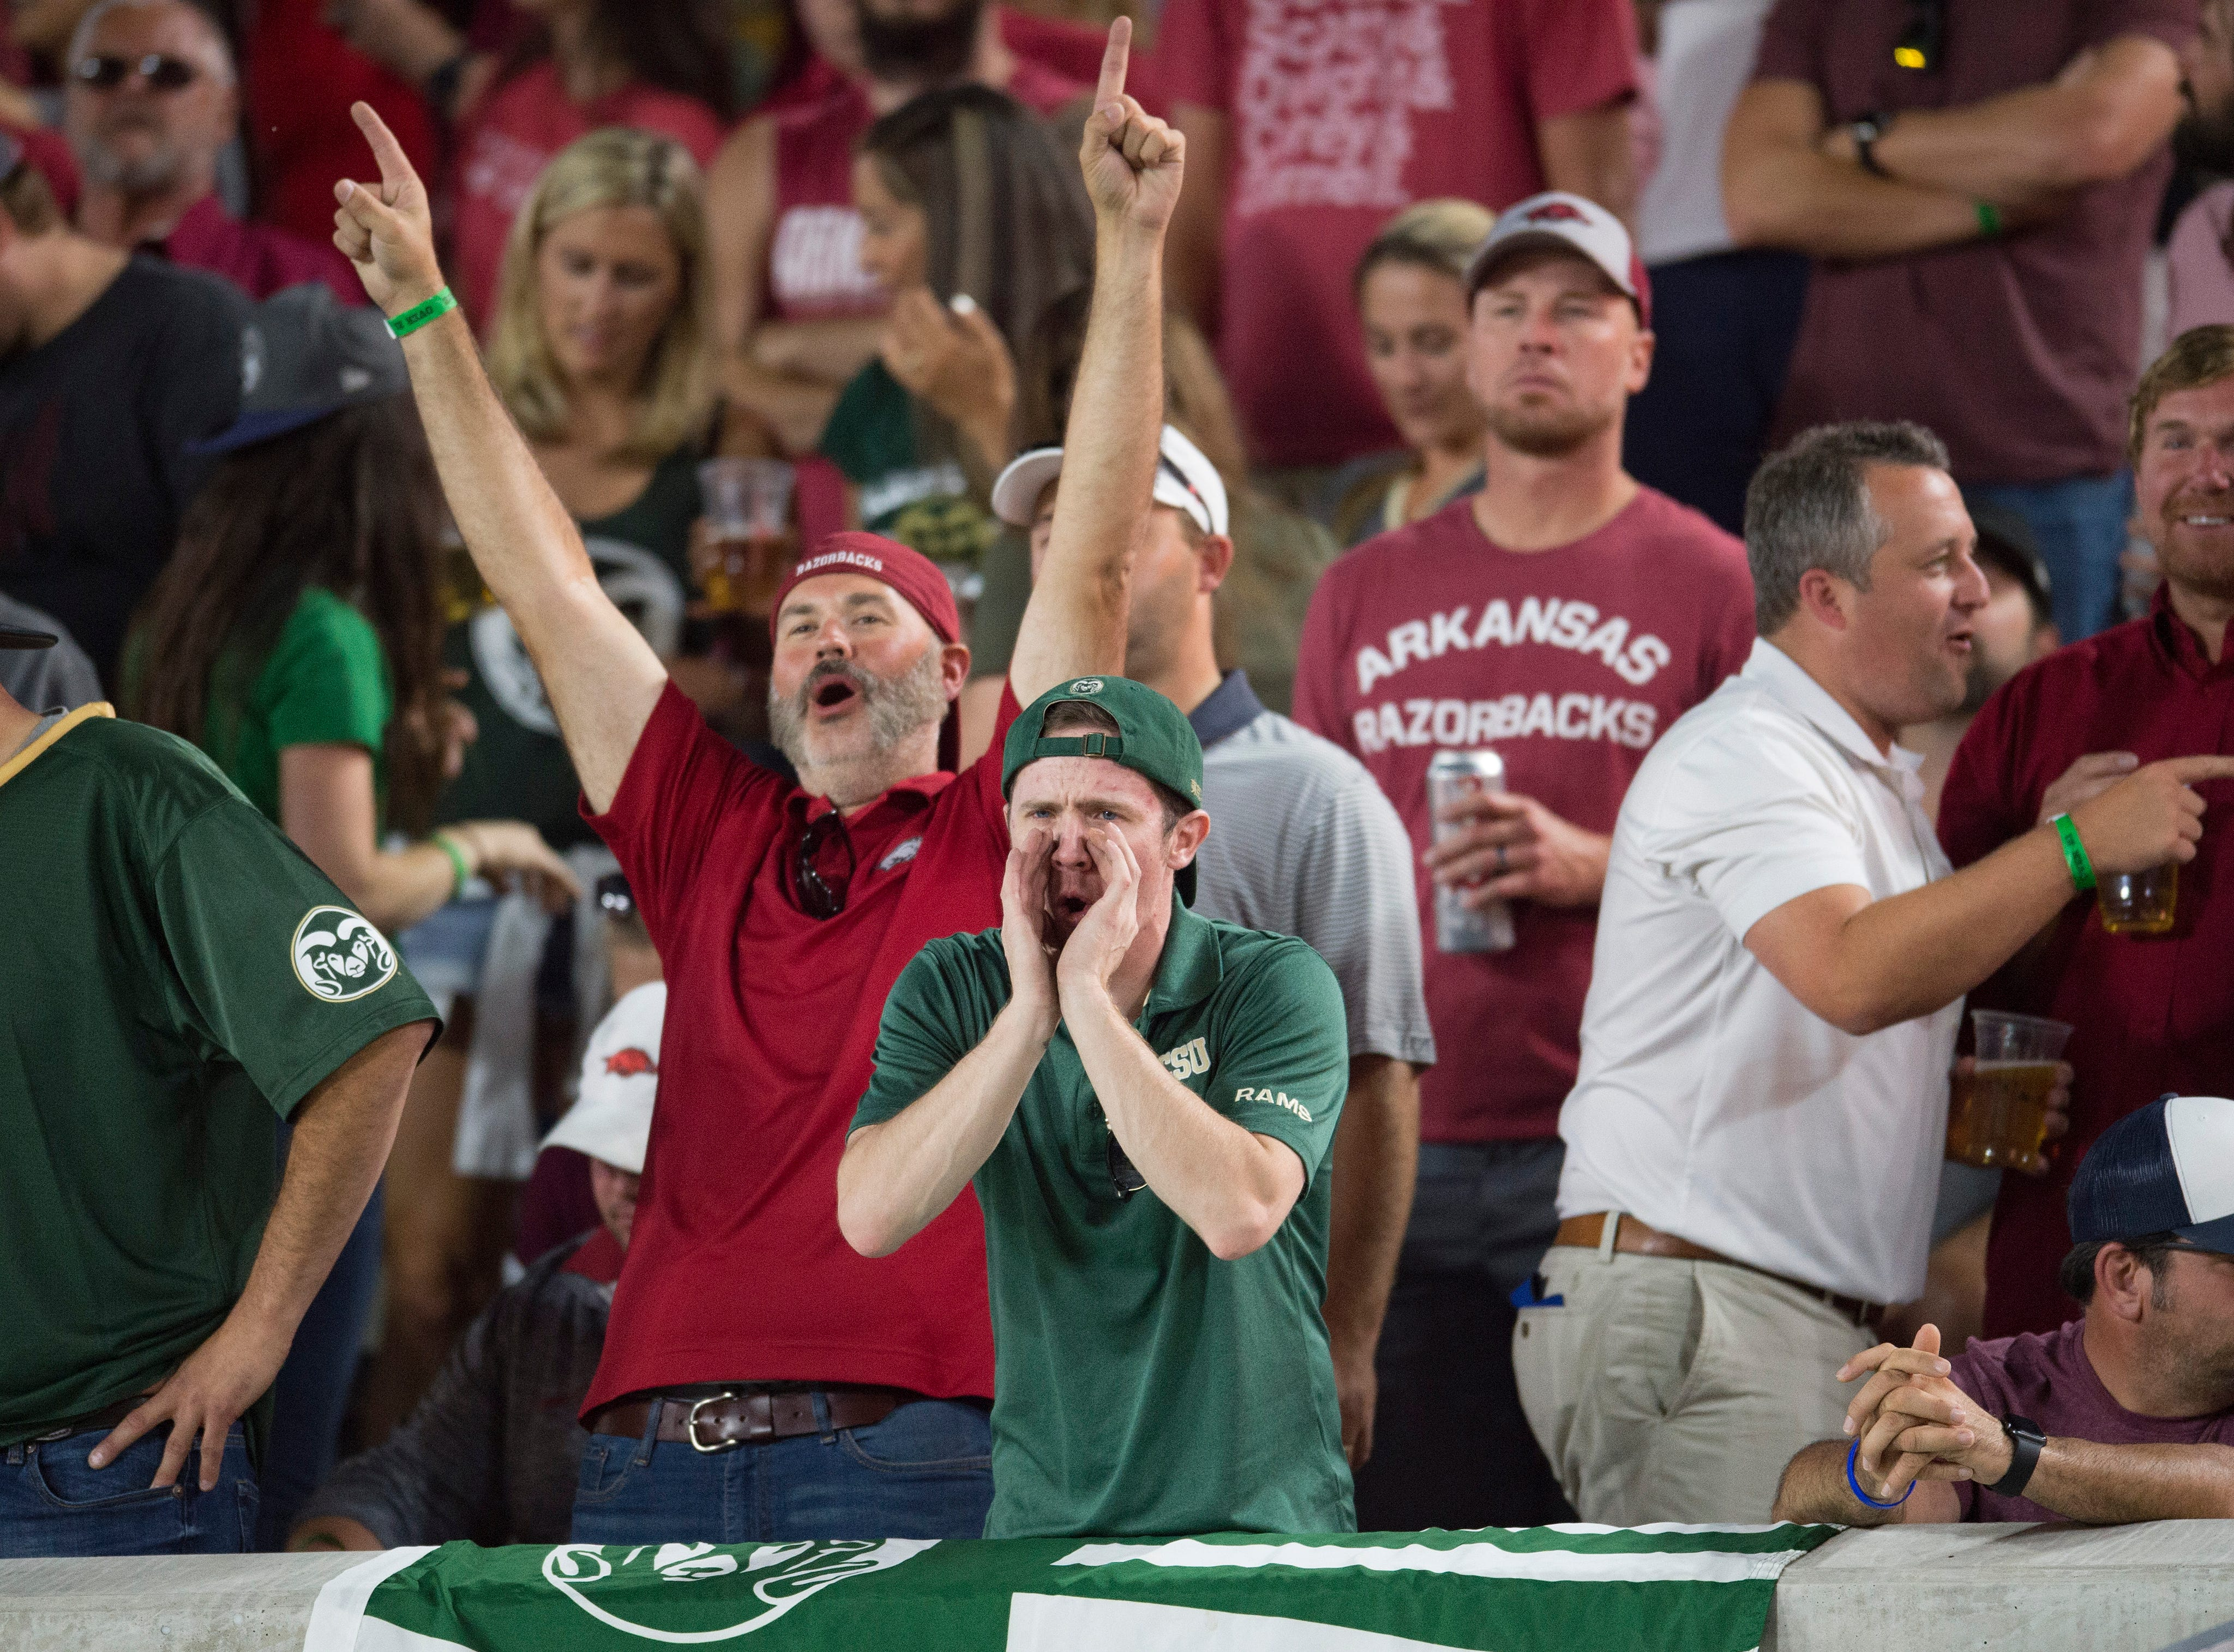 Razorbacks and Rams fans support their team as CSU takes on Arkansas at Canvas Stadium on Saturday, September 8, 2018.